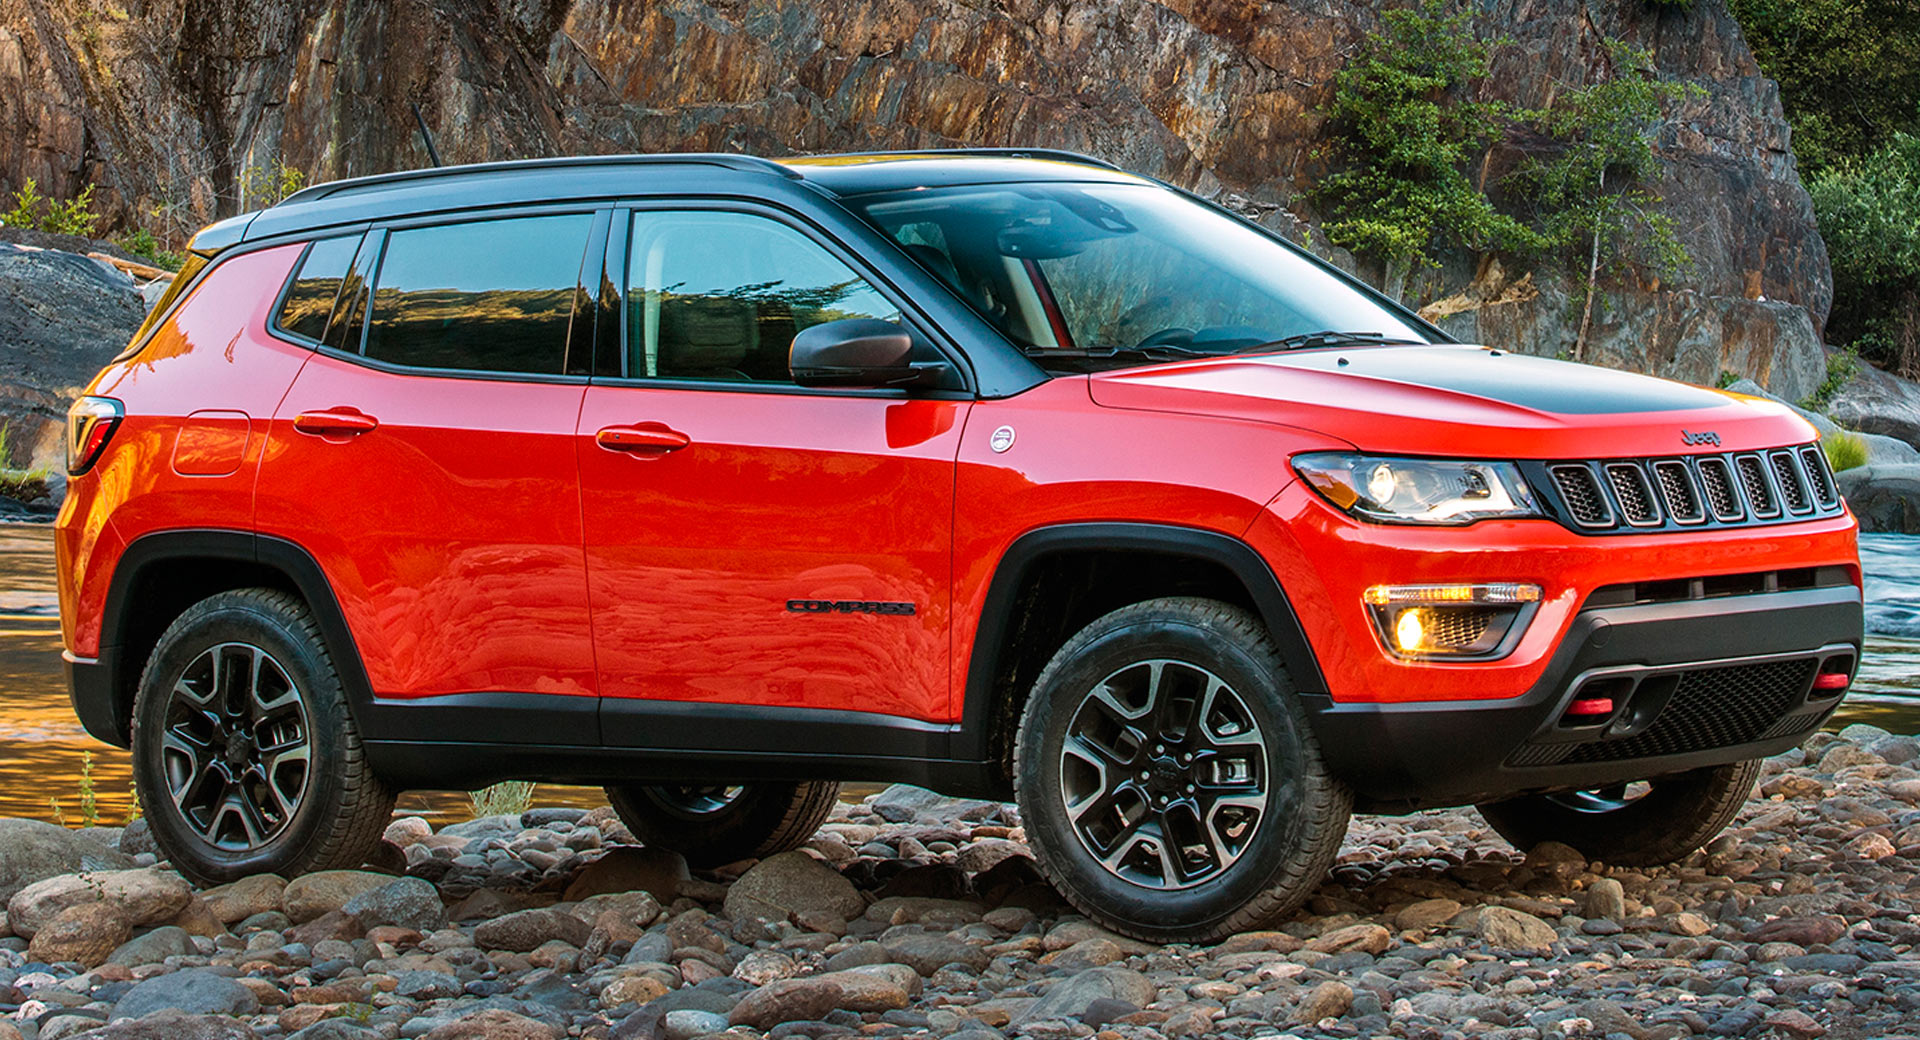 2019 jeep compass upland special edition gives the entry level model trailhawk looks carscoops. Black Bedroom Furniture Sets. Home Design Ideas